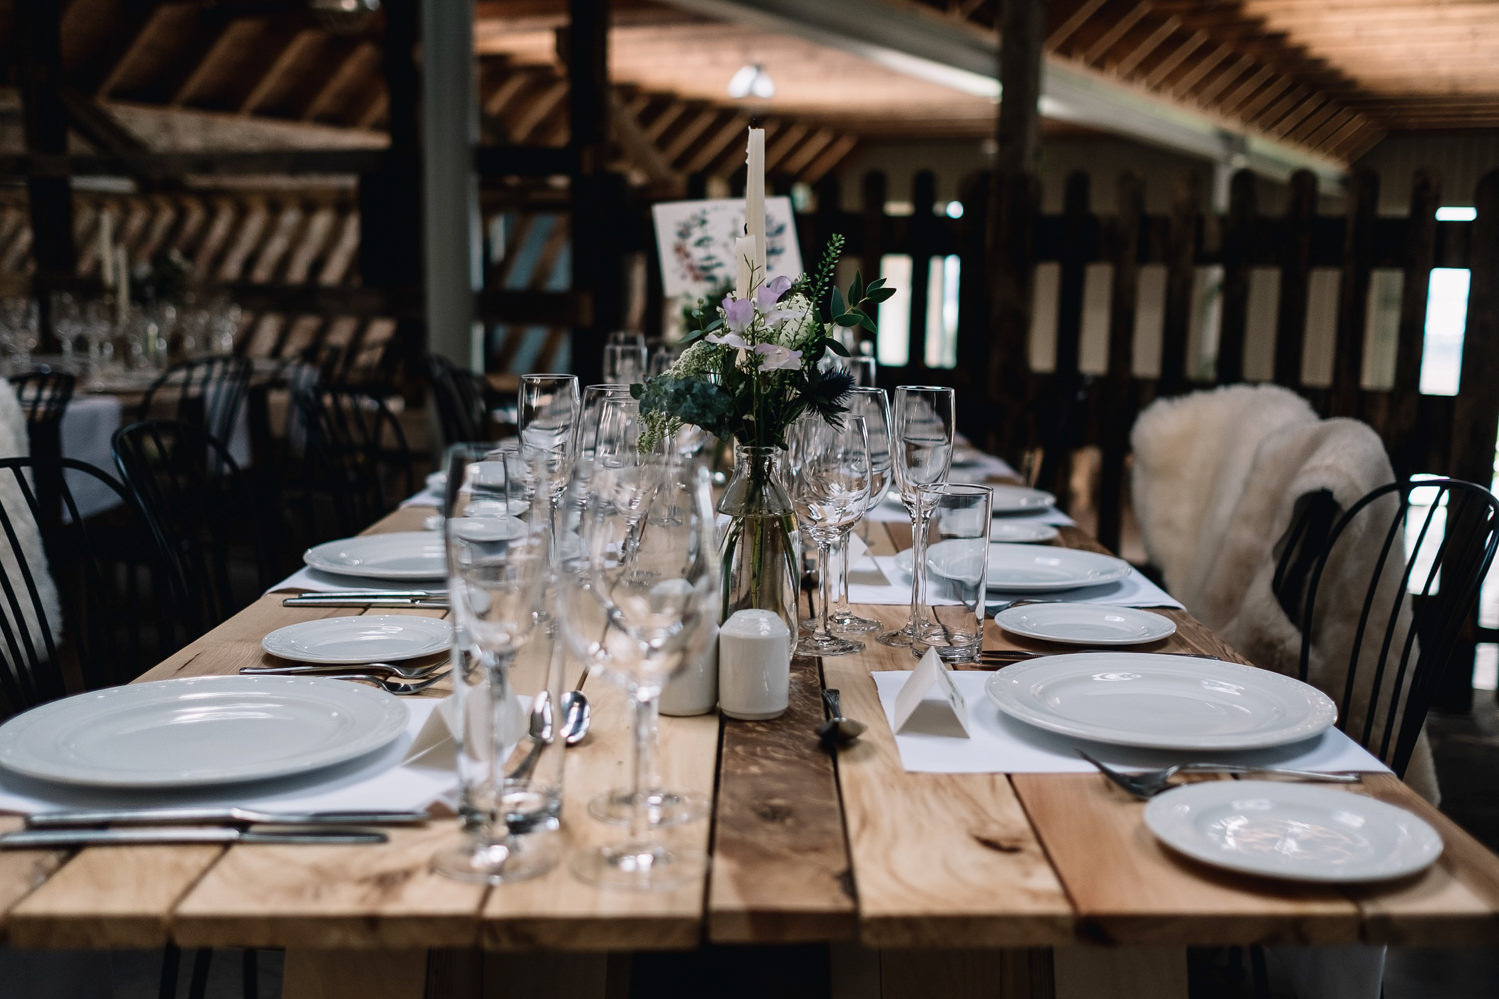 One long table in the barn has been set up for hte wedidng breakfast